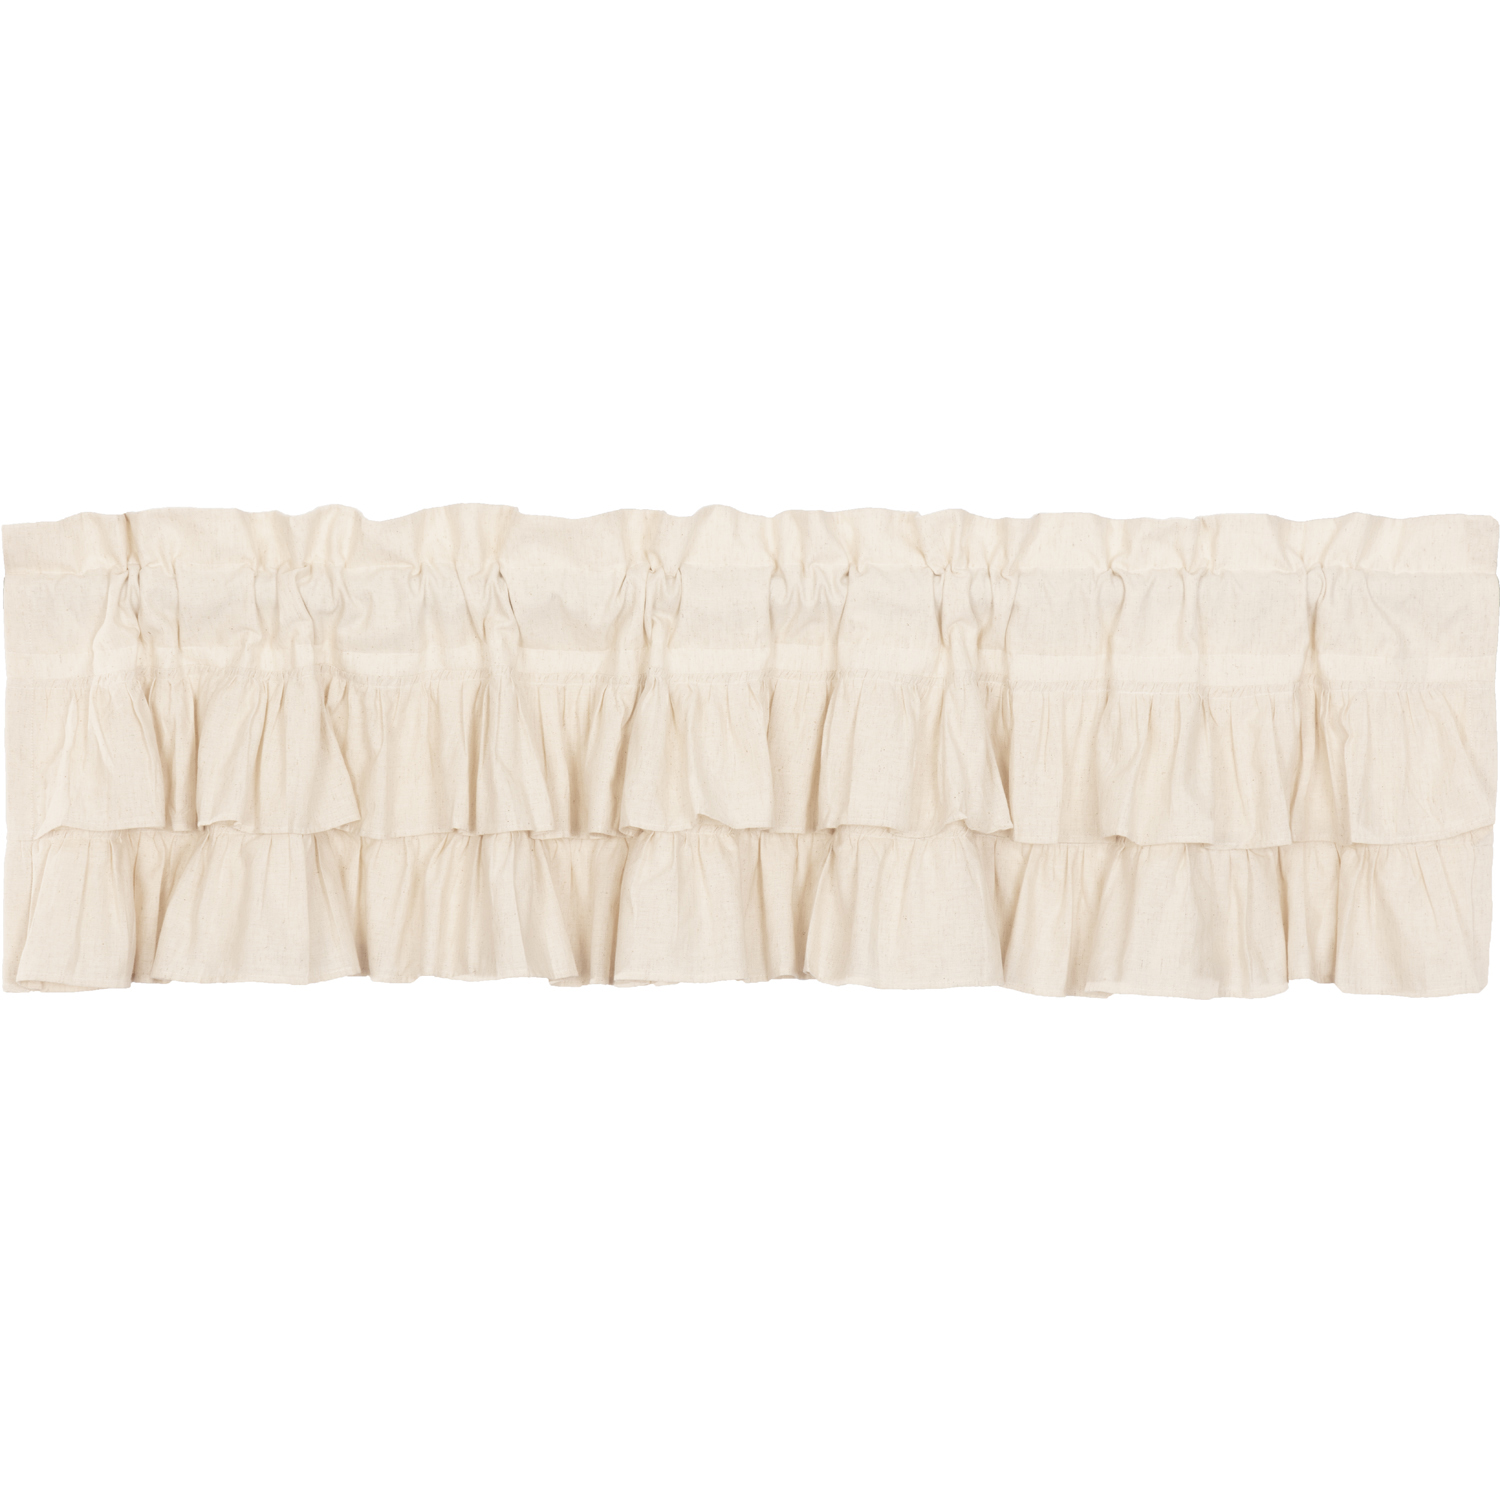 Simple Life Flax Natural Ruffled Valance 16x72